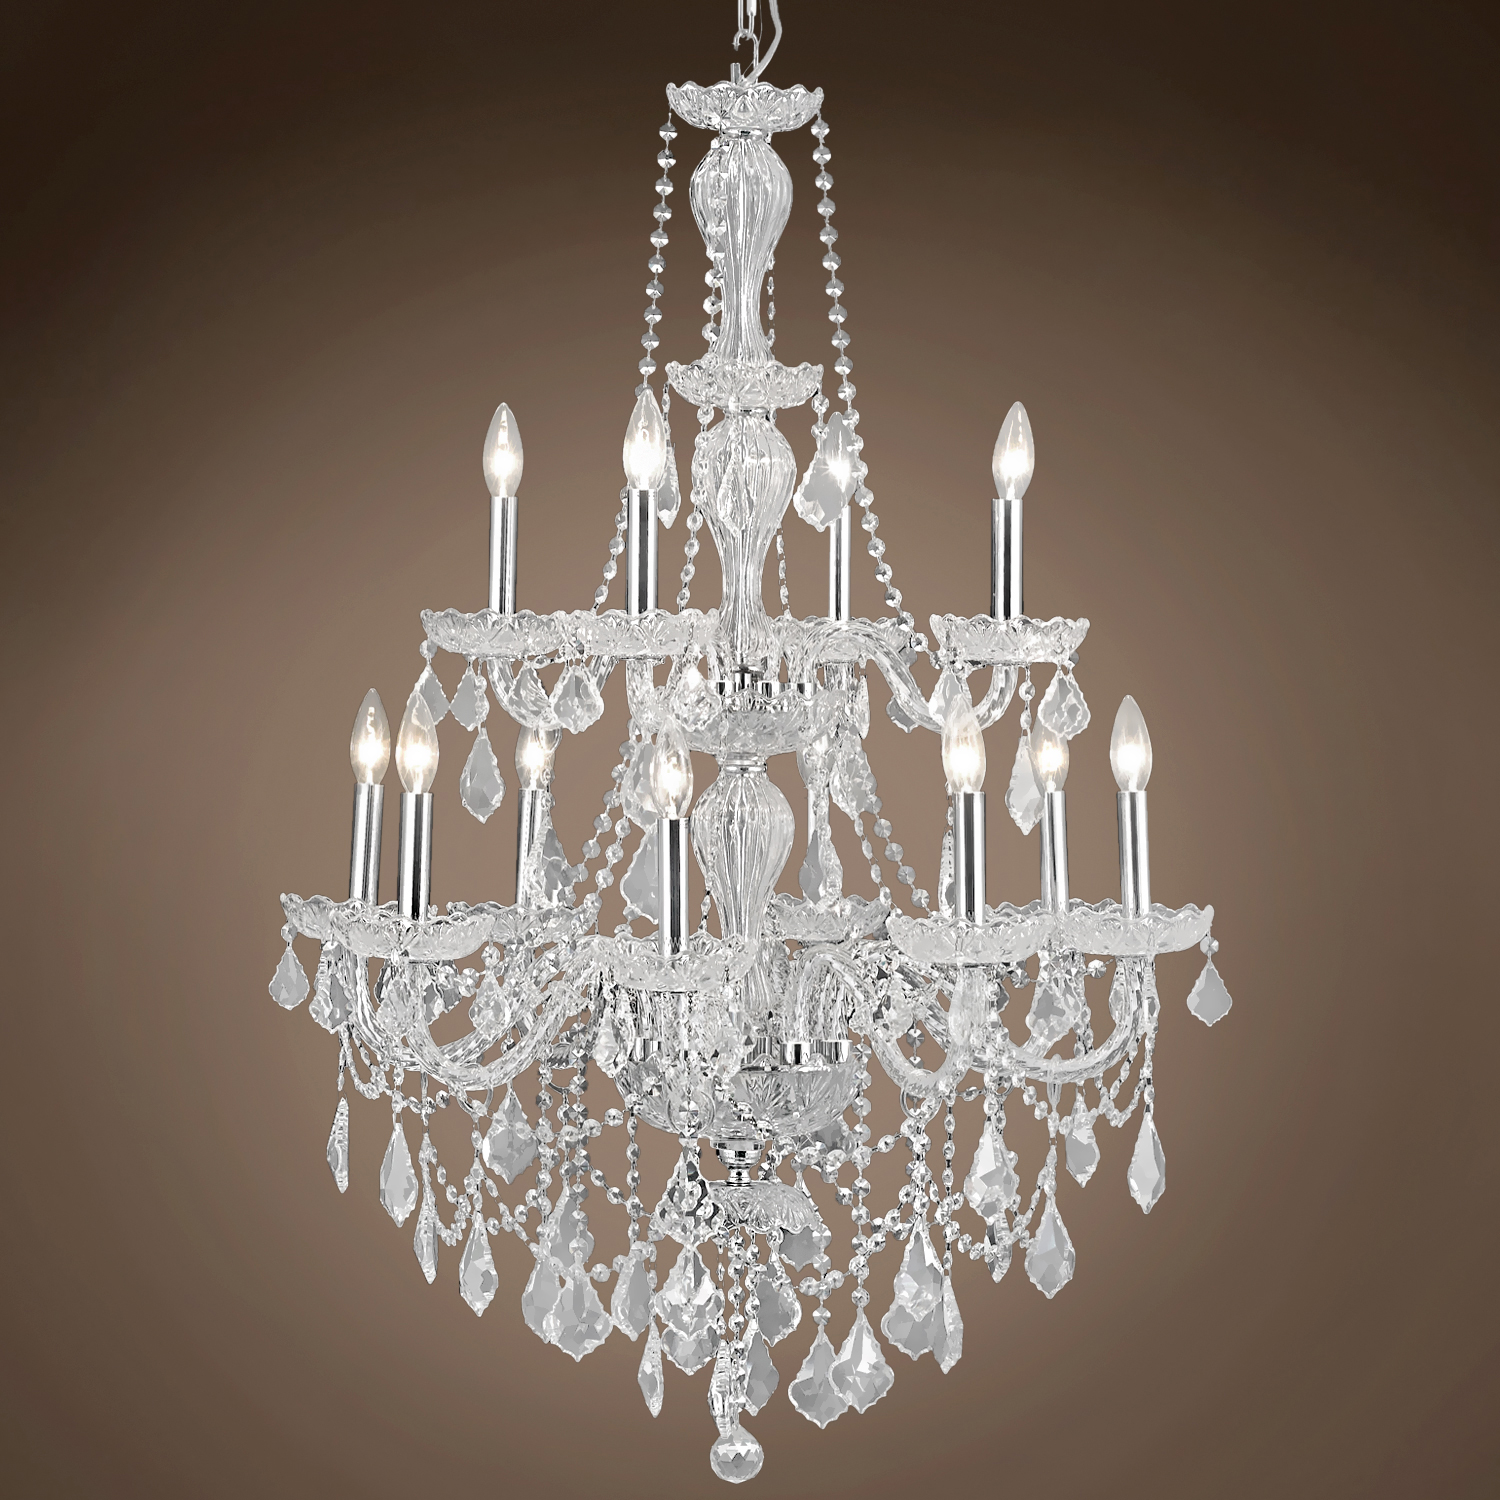 joshua marshal 701294 victorian design 12 light 28 chandelier from victorian collection. Black Bedroom Furniture Sets. Home Design Ideas